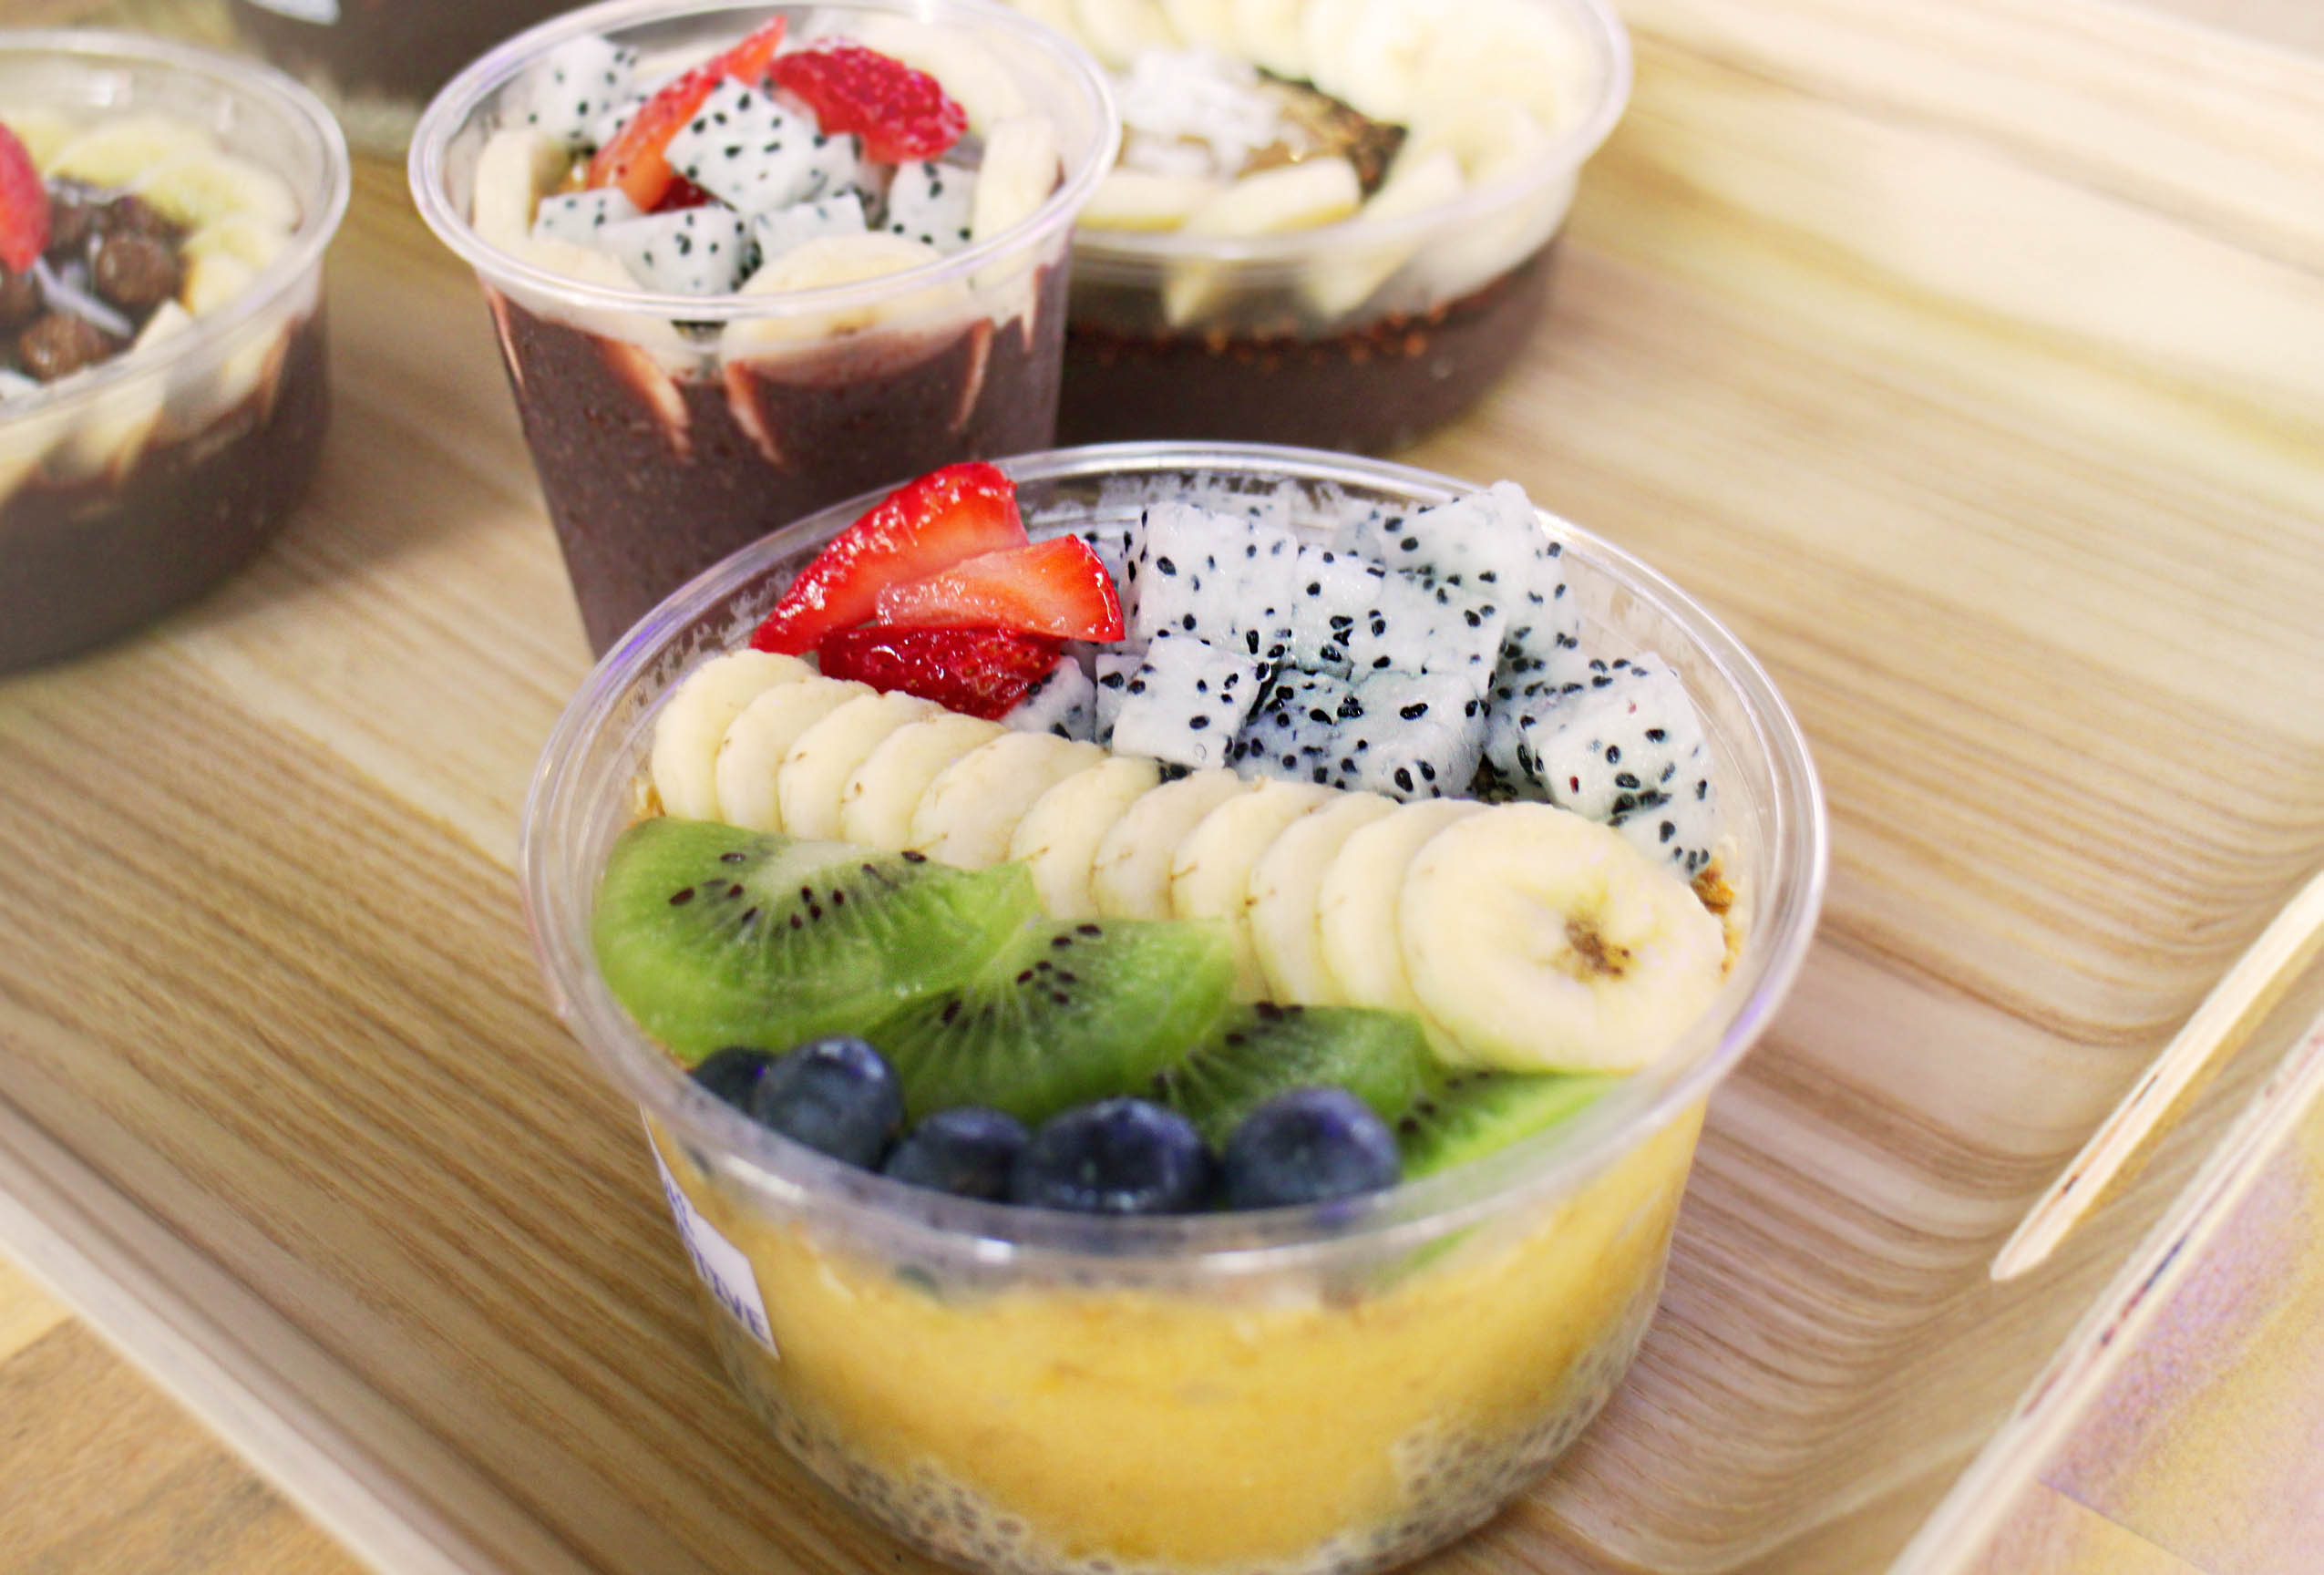 The Acai Bowl sells bowls with the acerola cherry. Found at MyVillage.